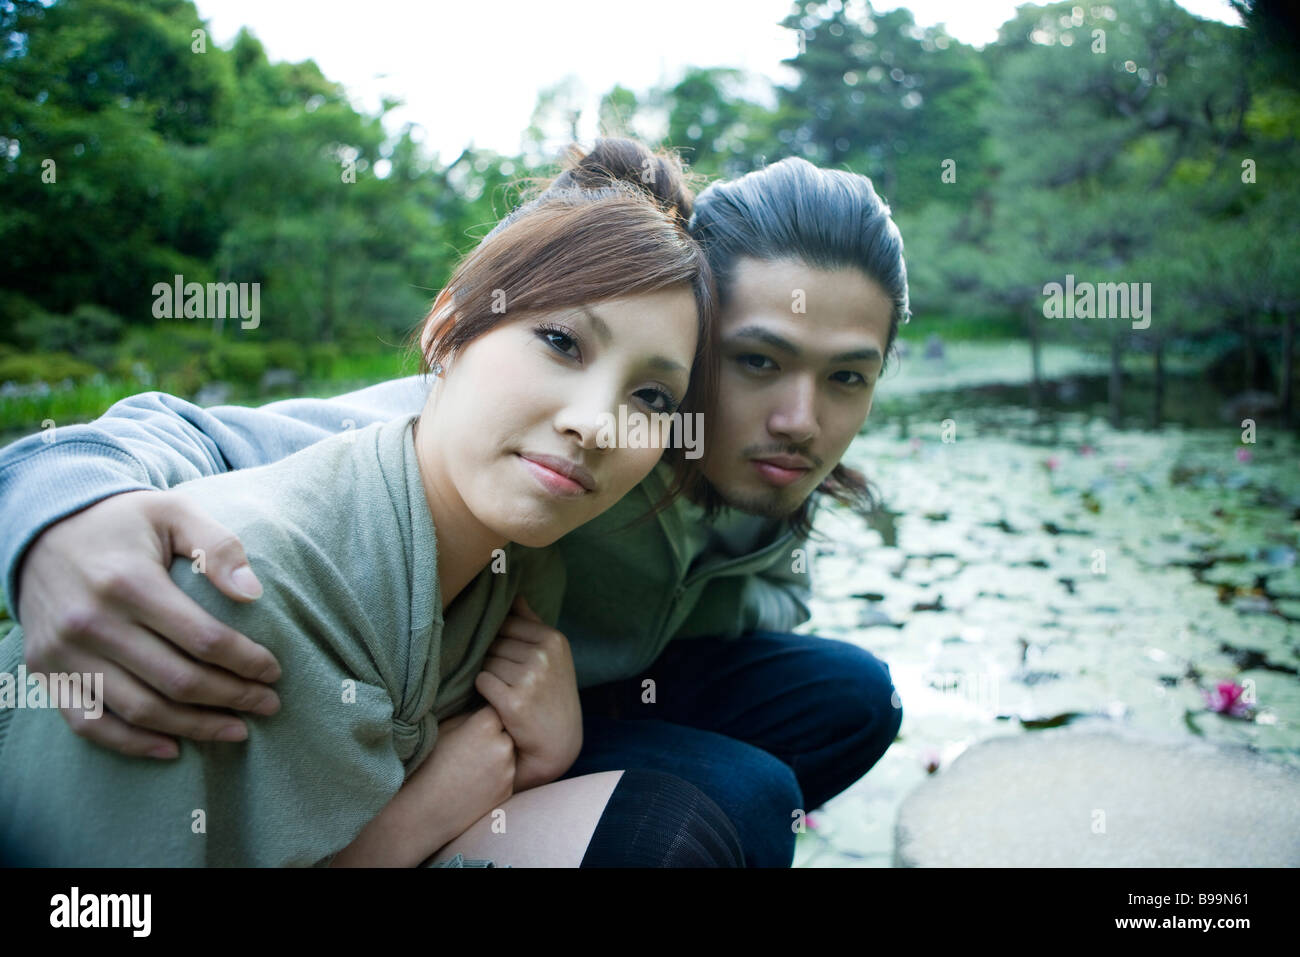 Young couple crouching beside pond, portrait - Stock Image